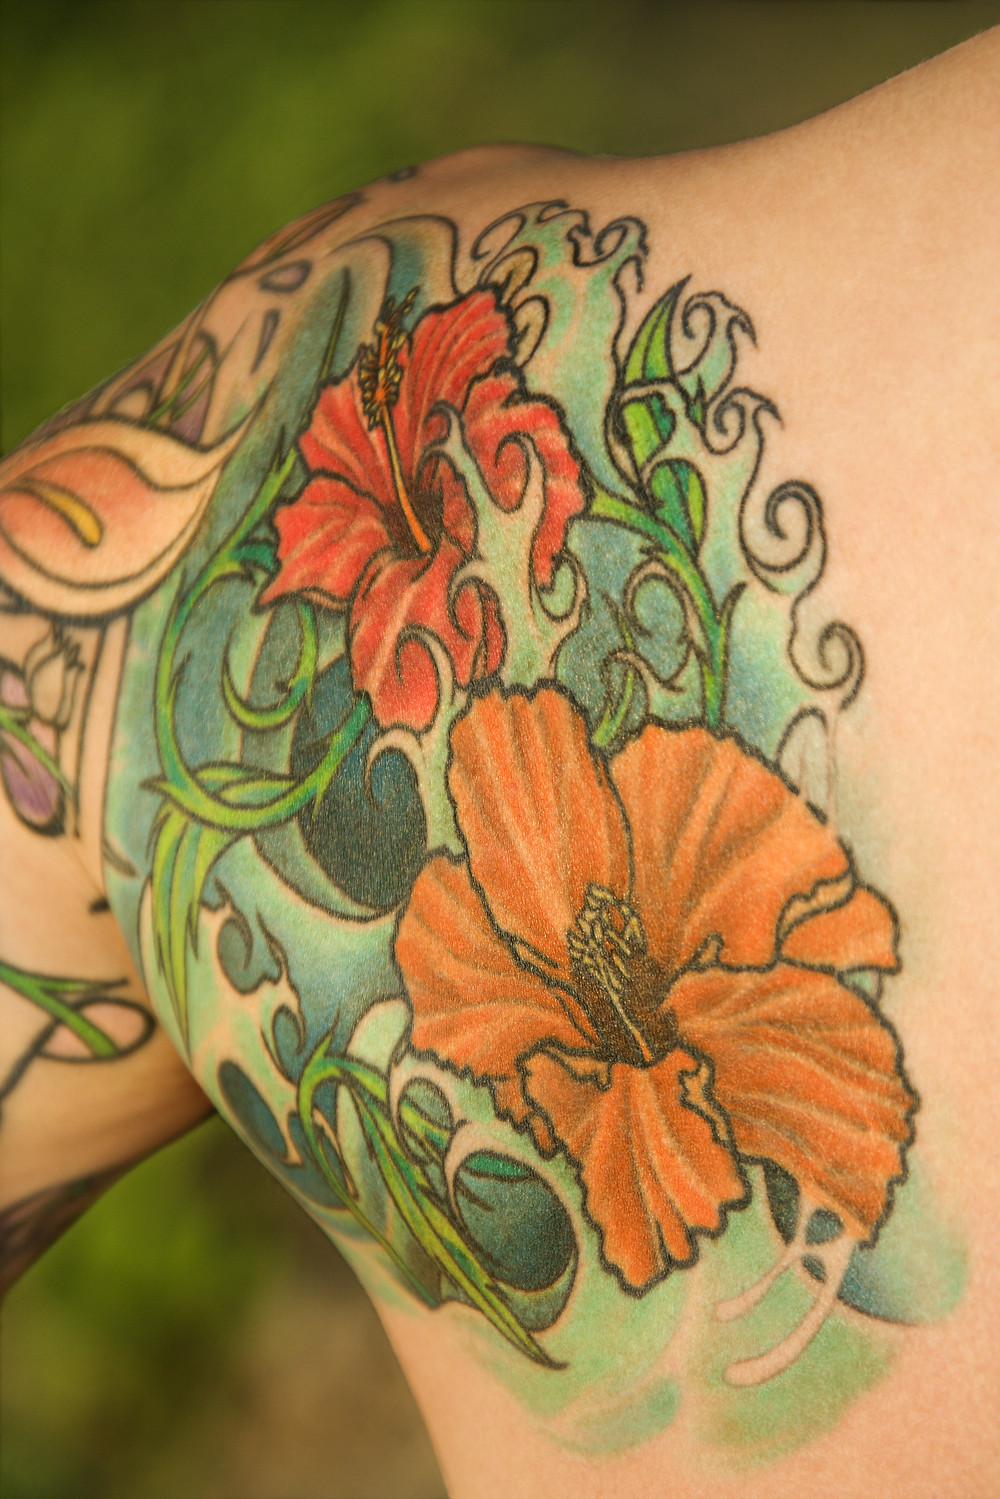 Spray Tanning is a safe tanning choice for tattoos